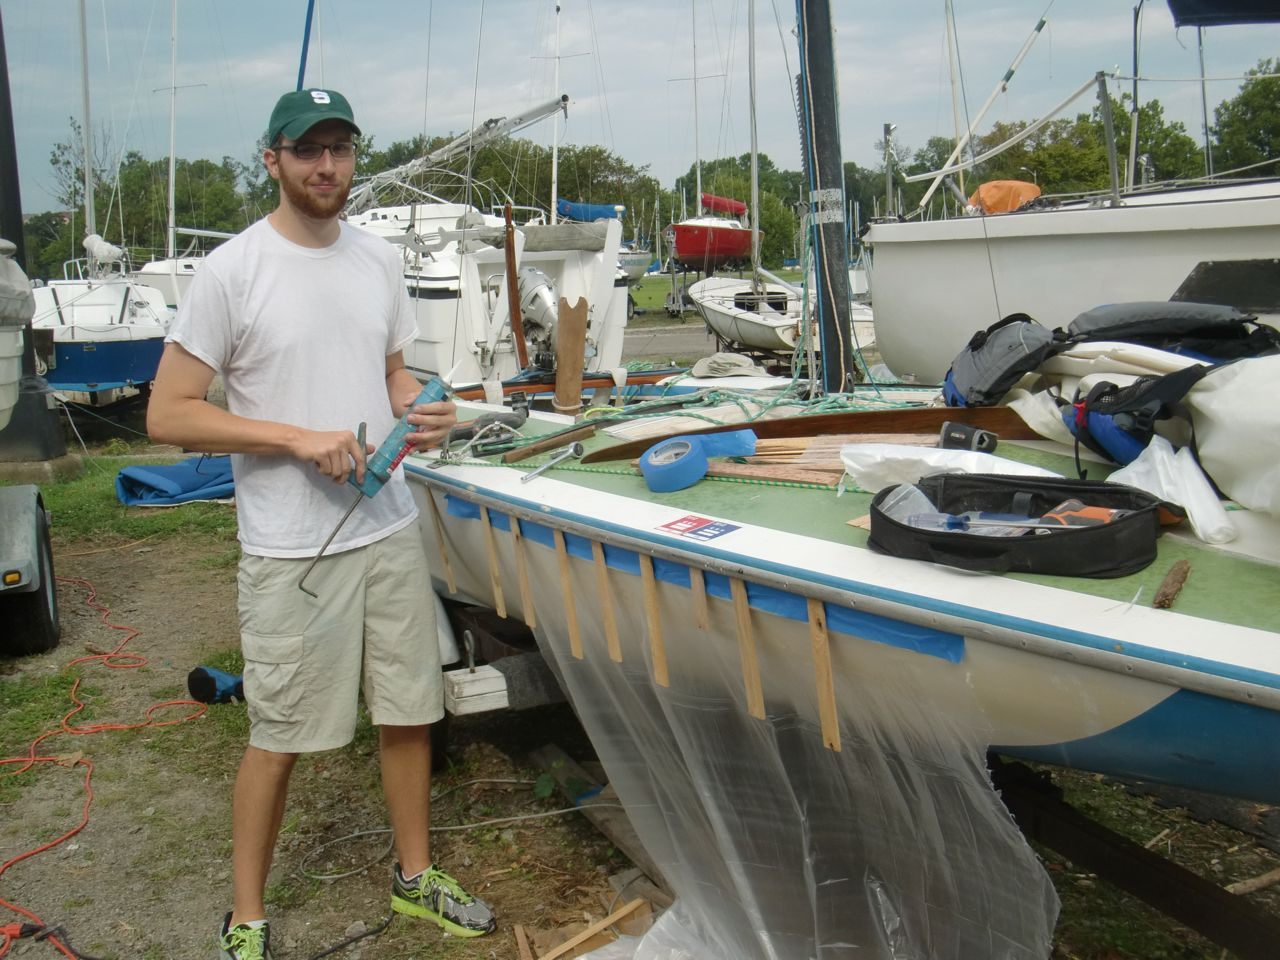 Plastic protects hull from stray caulking